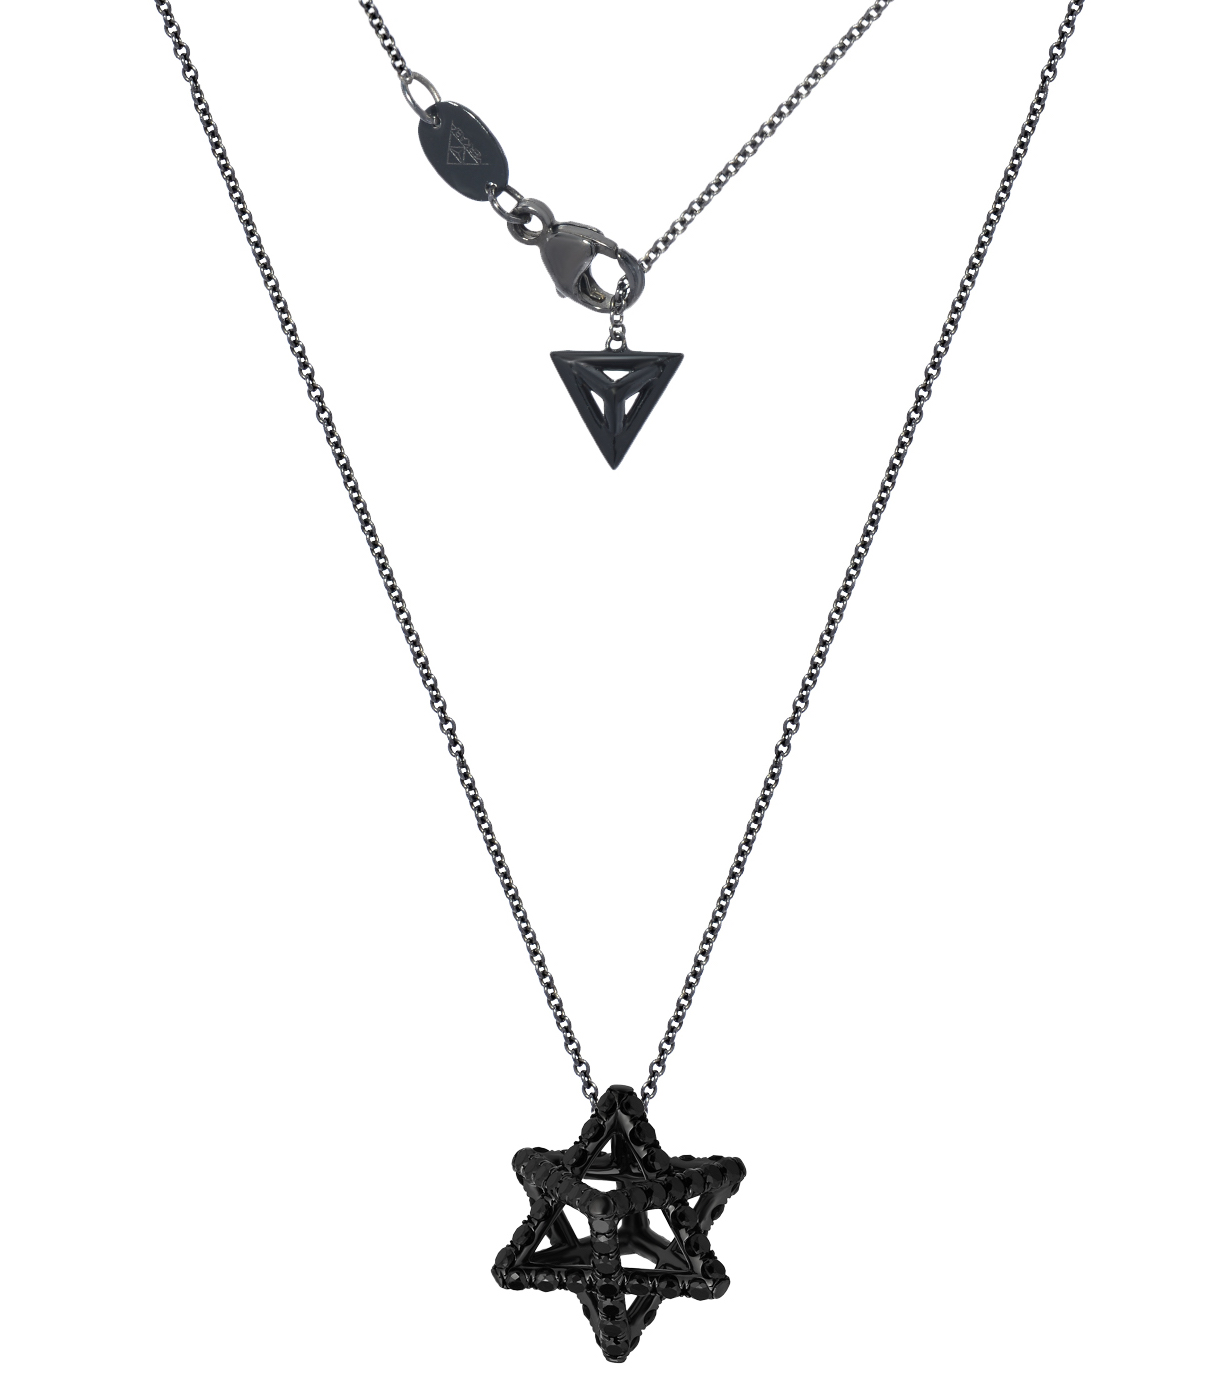 Merkaba Light pendant necklace | JCK On Your Market